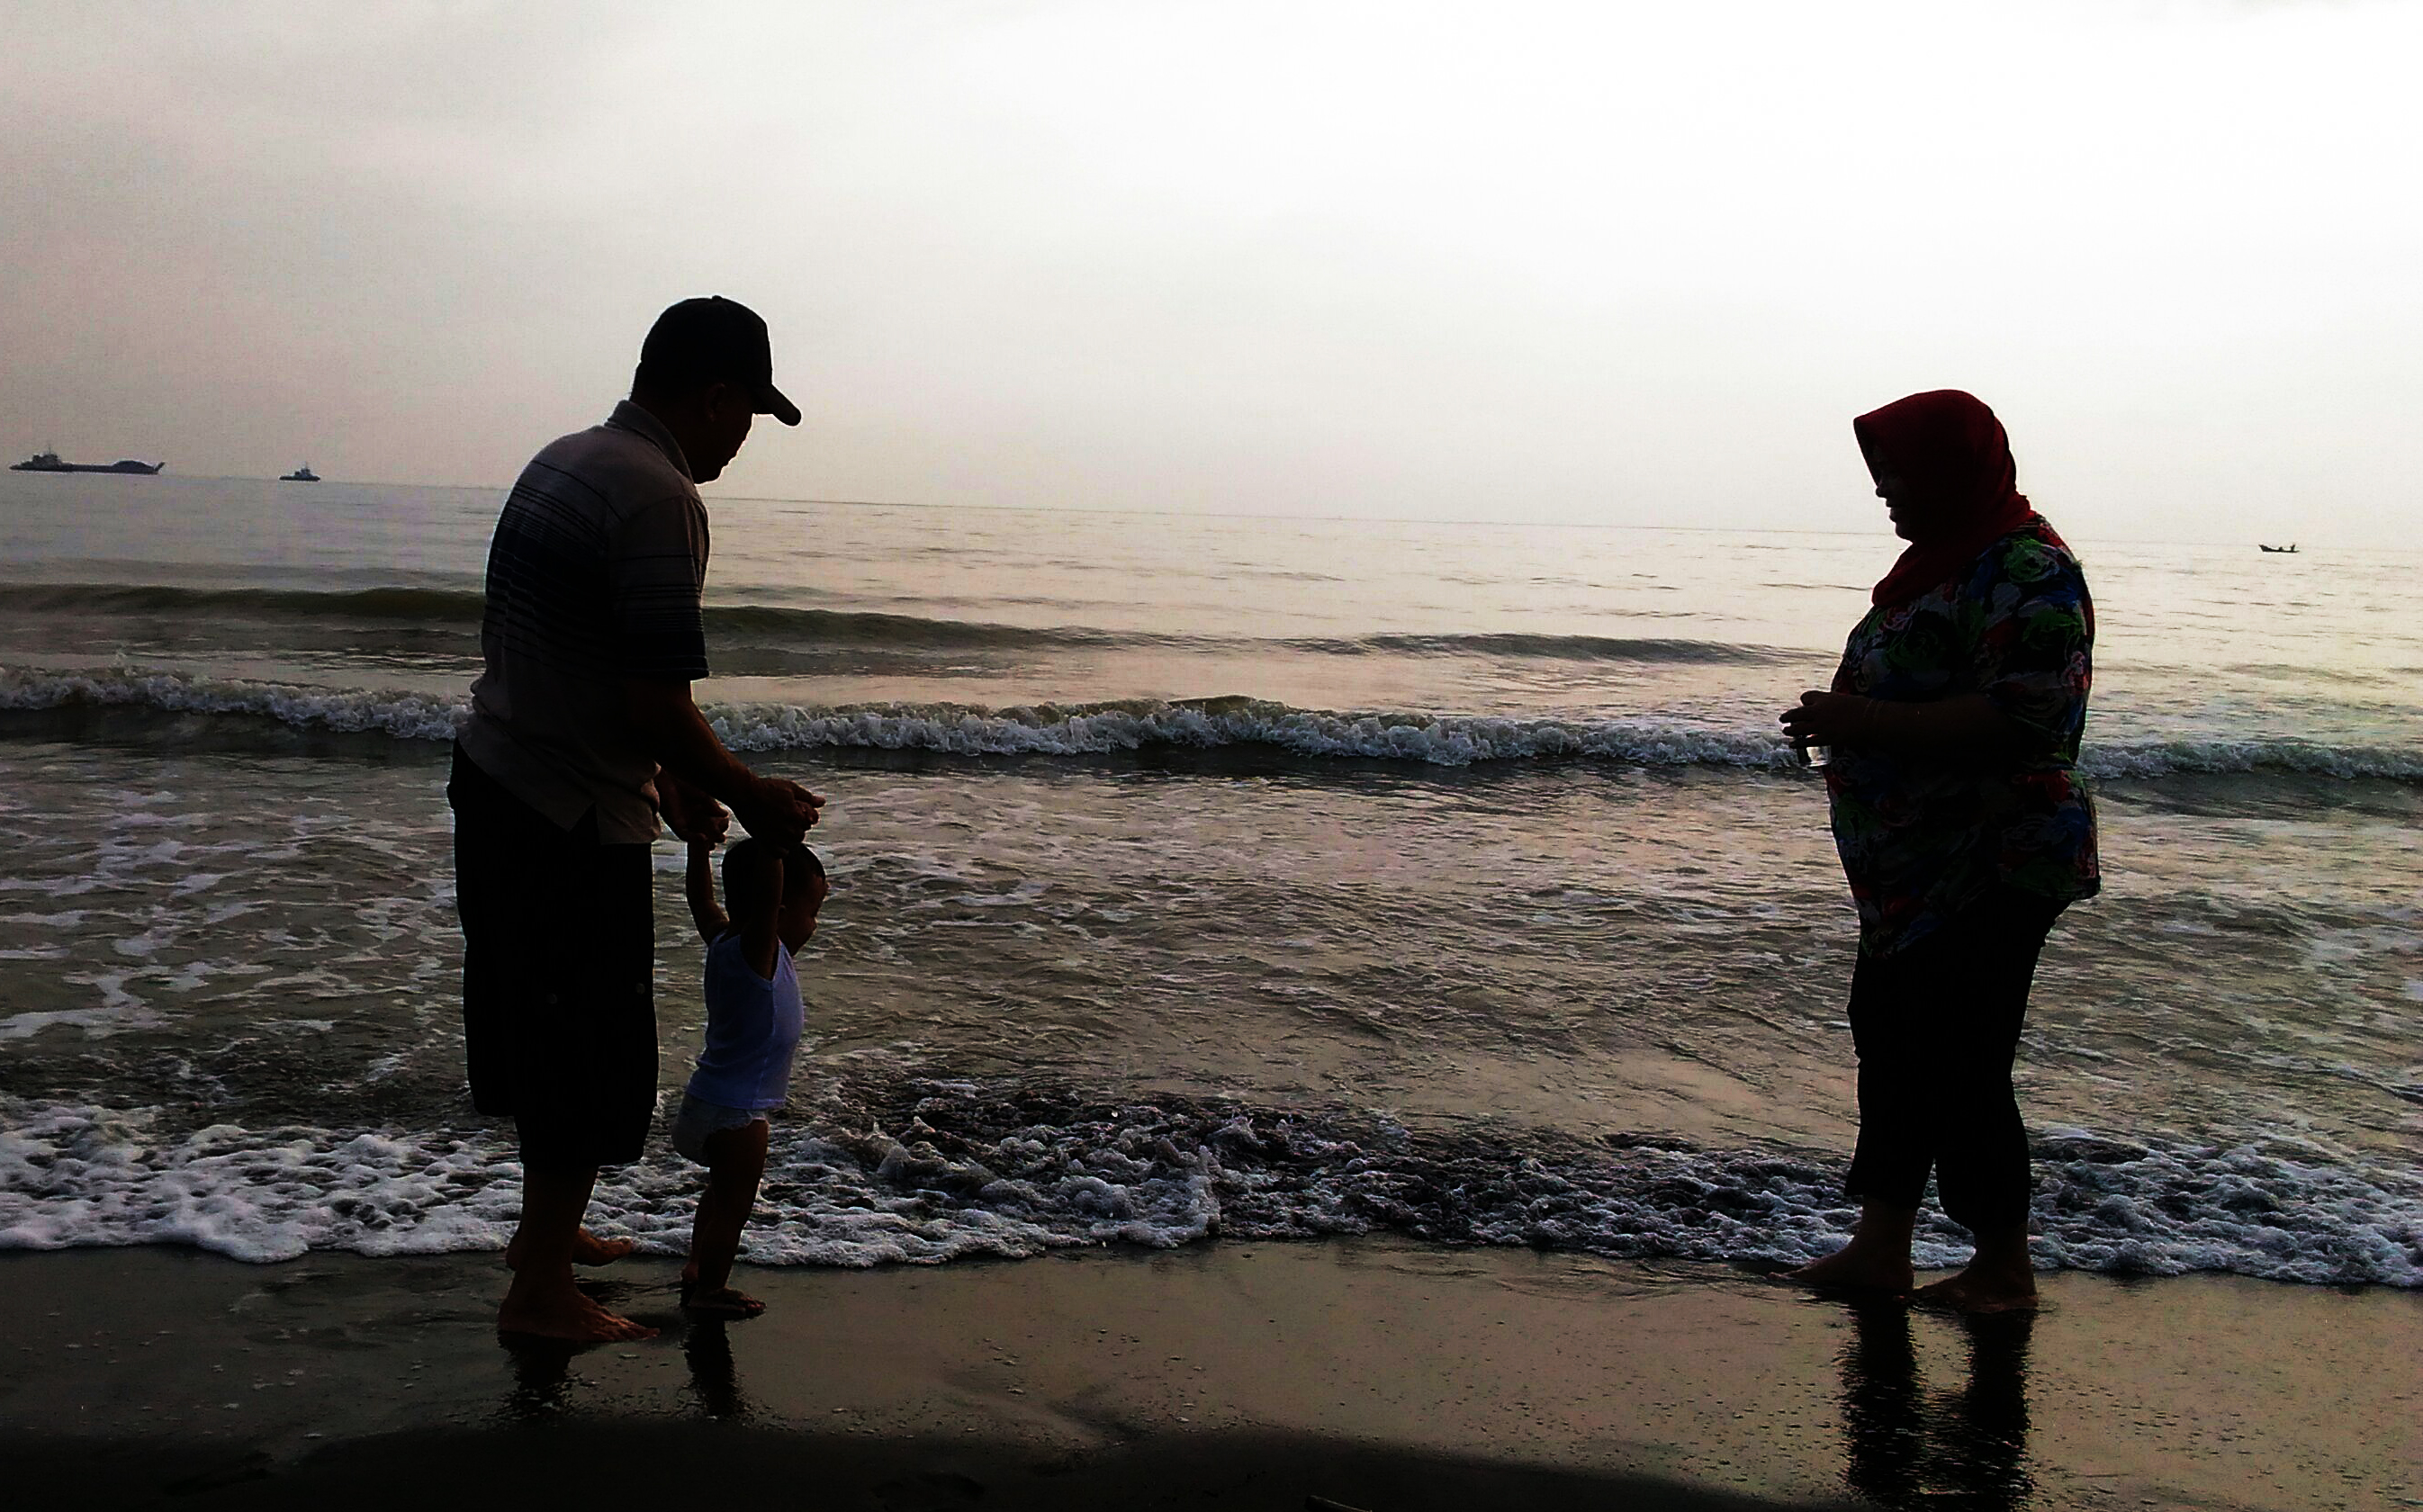 Family on The Beach, Beach, Family, Indonesia, Vacation, HQ Photo